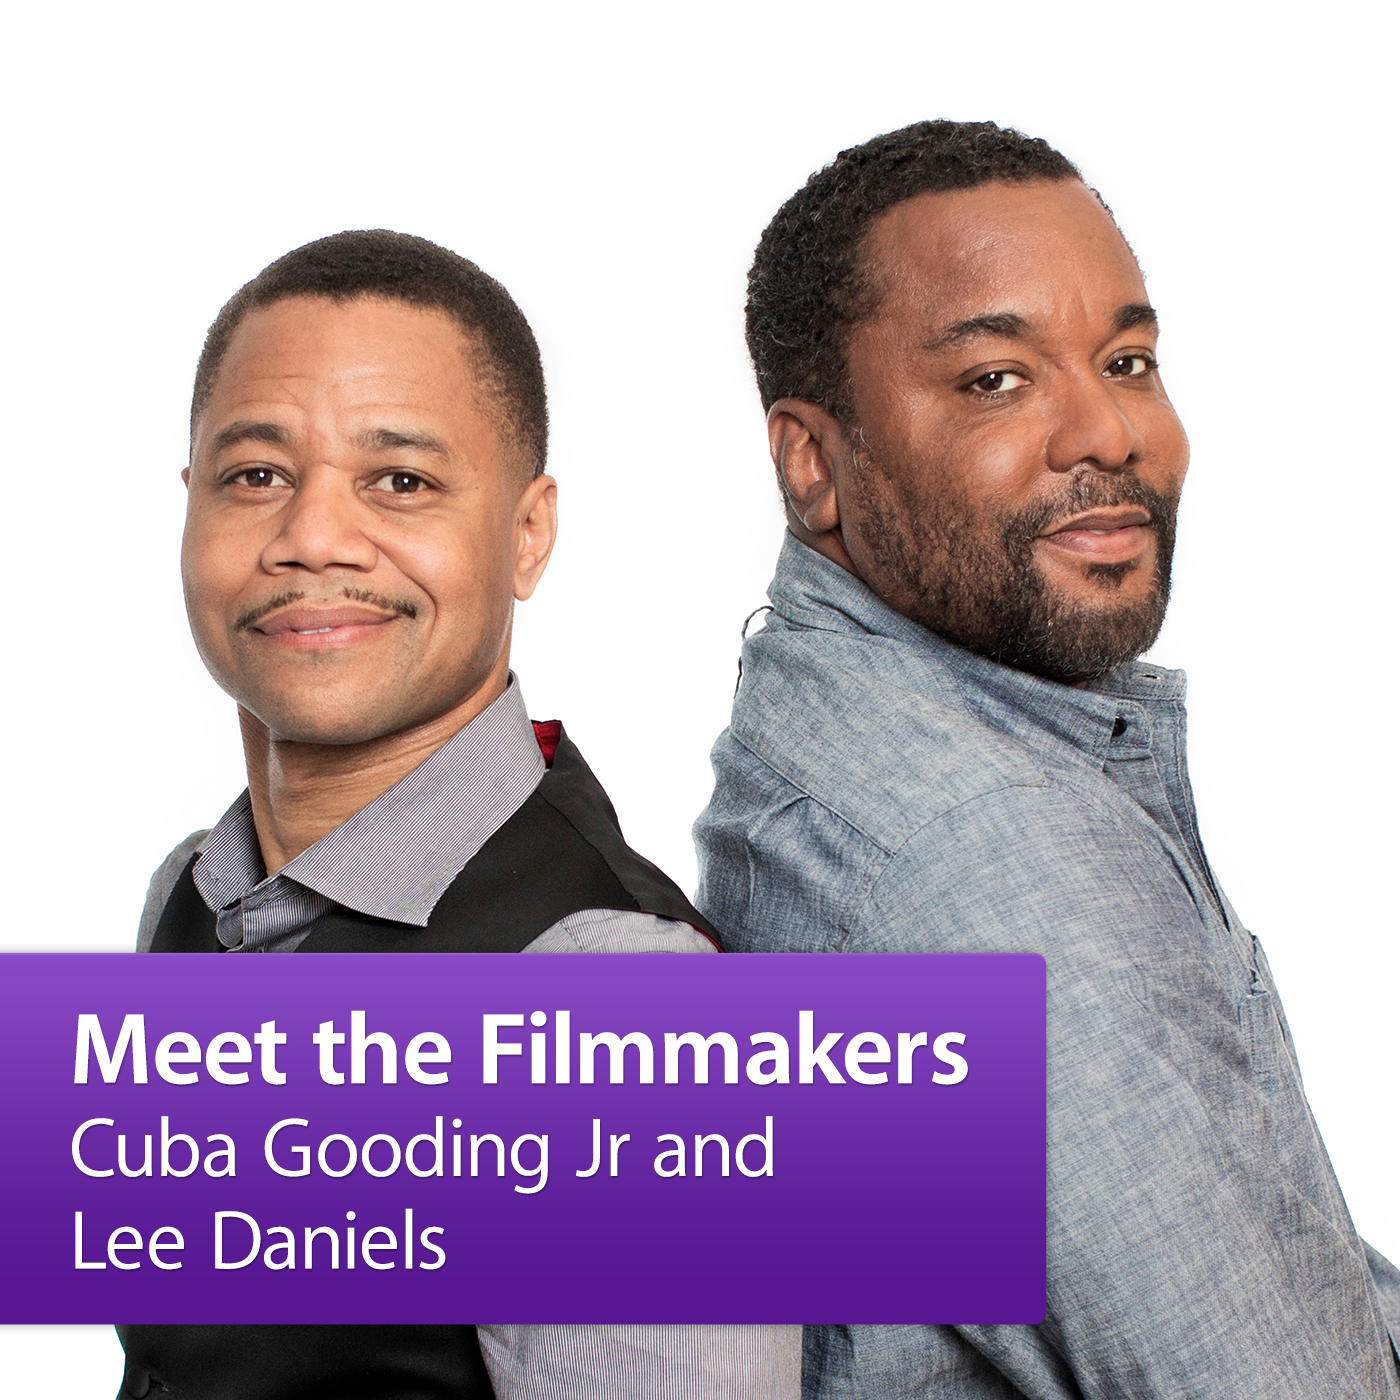 Lee Daniels and Cuba Gooding Jr.: Meet the Filmmaker